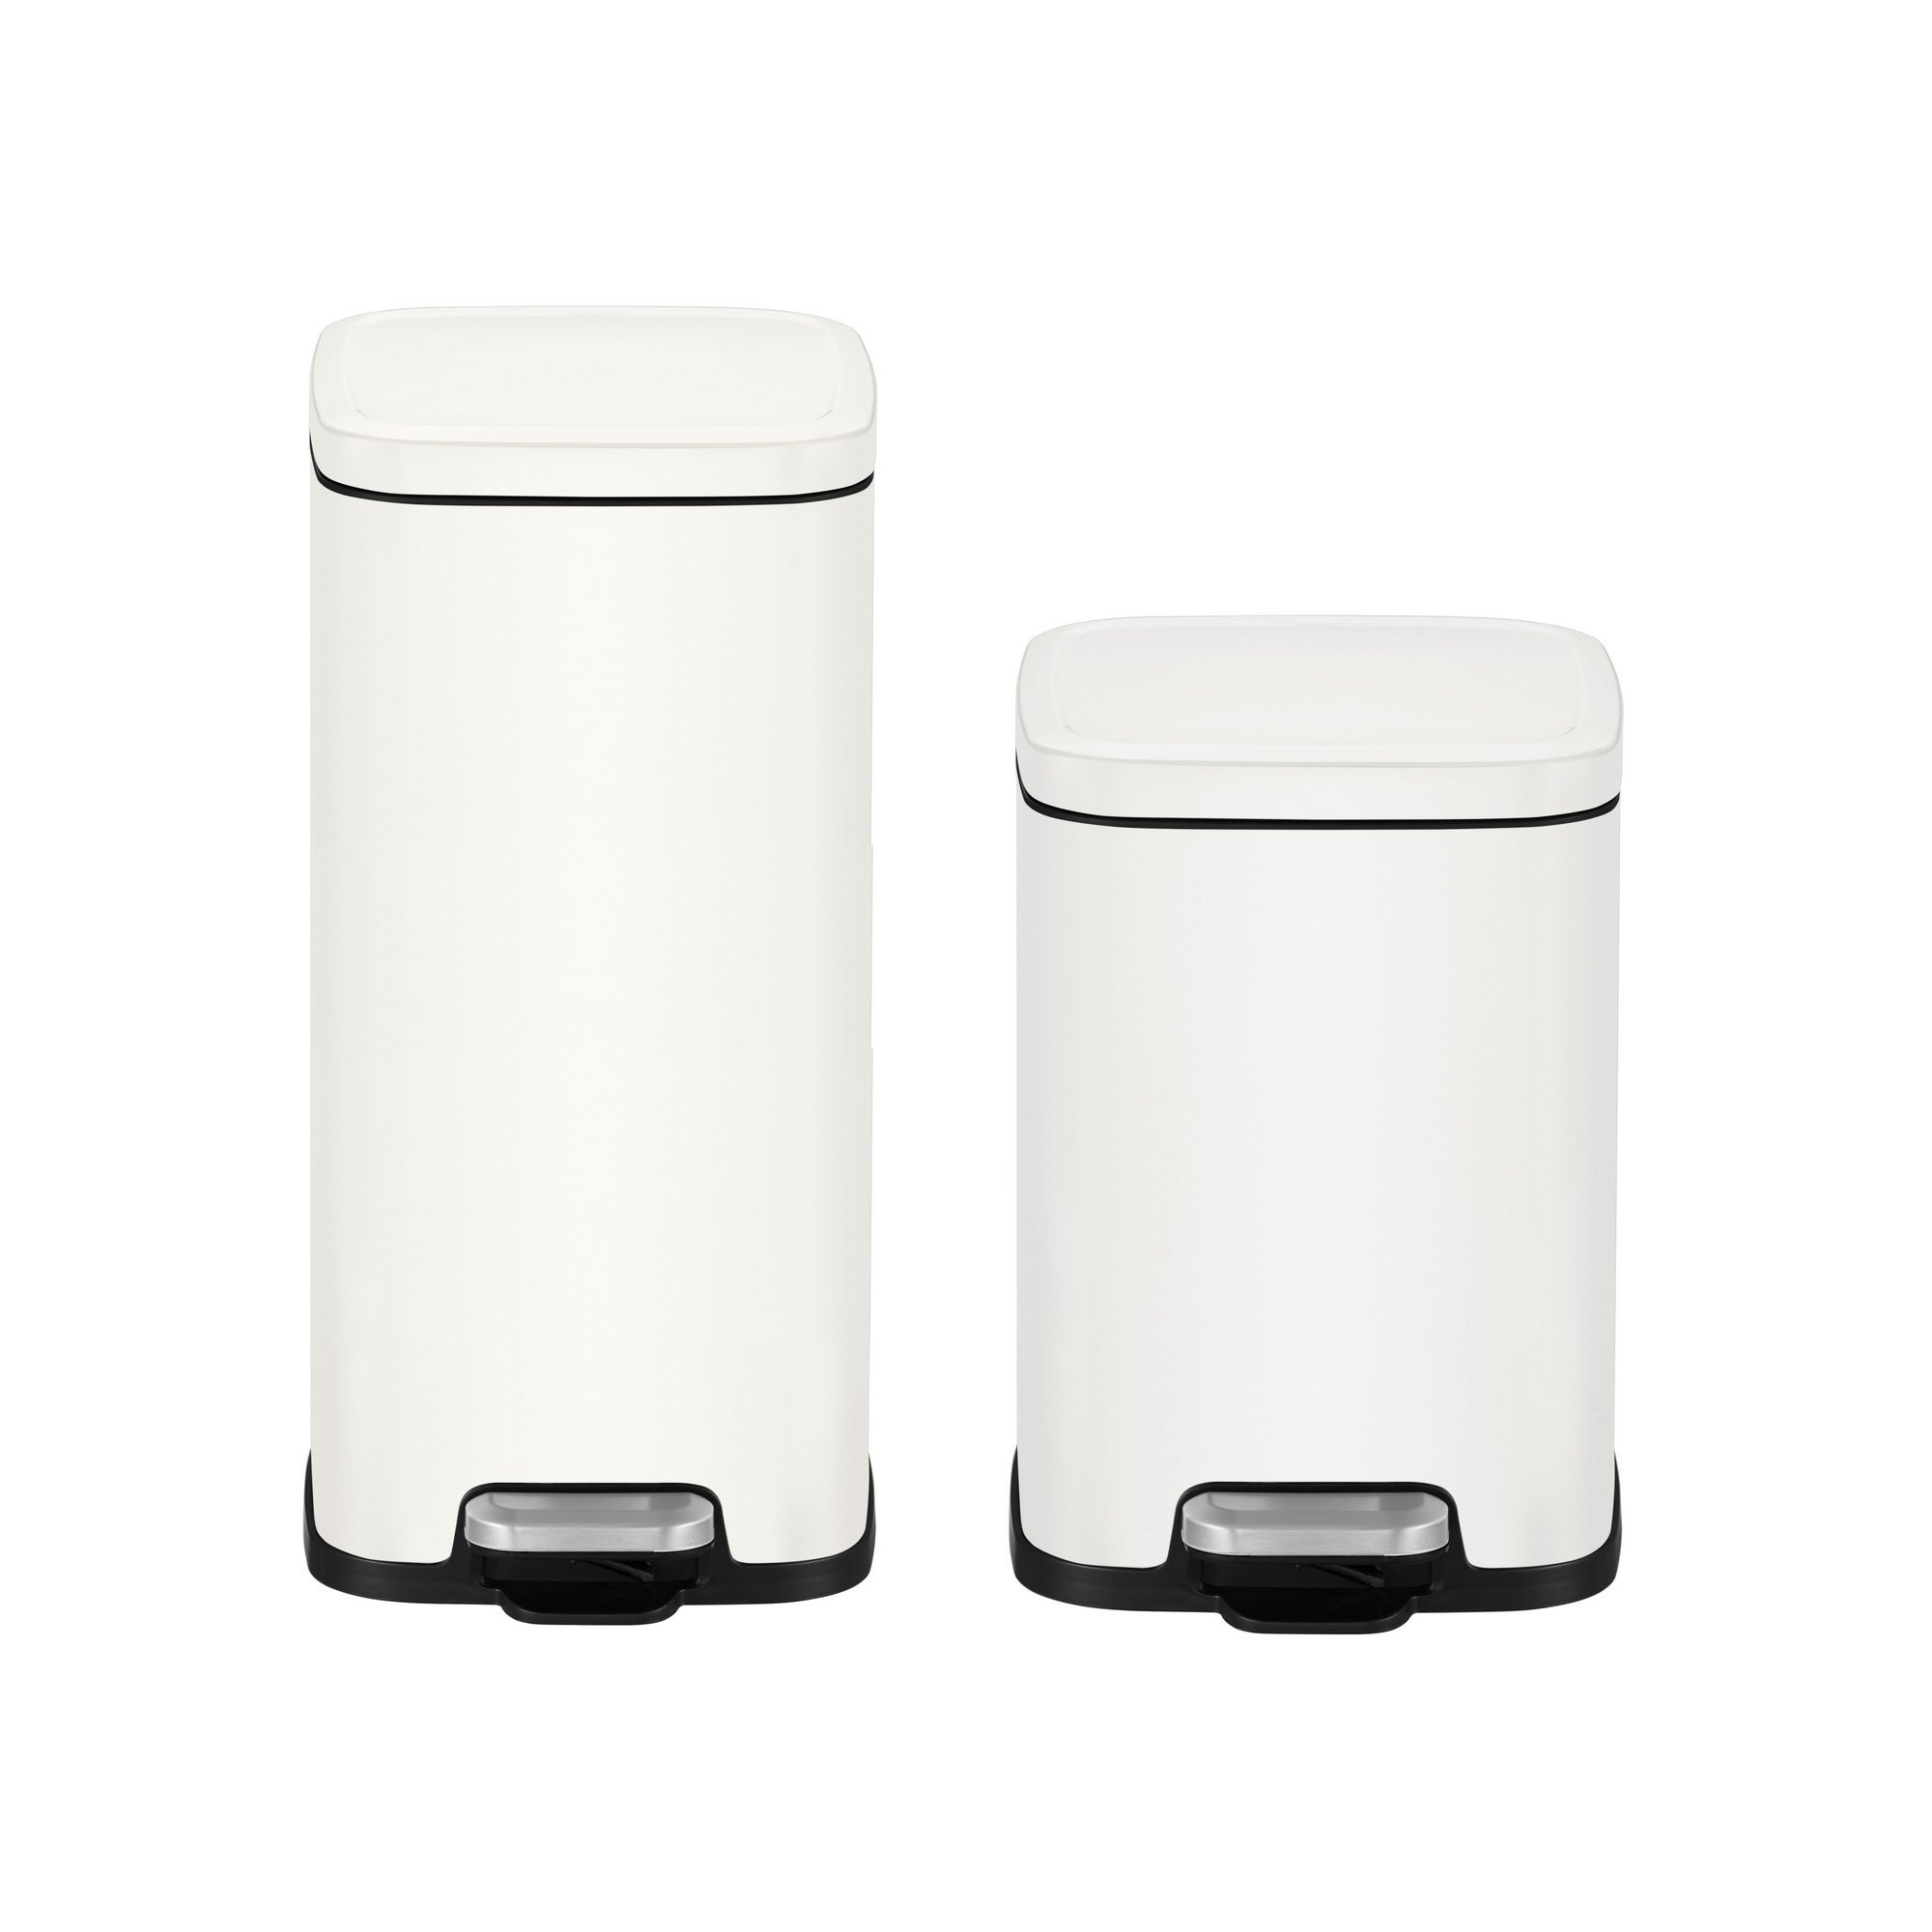 EKO Stella 2 Piece Stainless Steel Pedal Waste Bin Set, 30/6 Litre